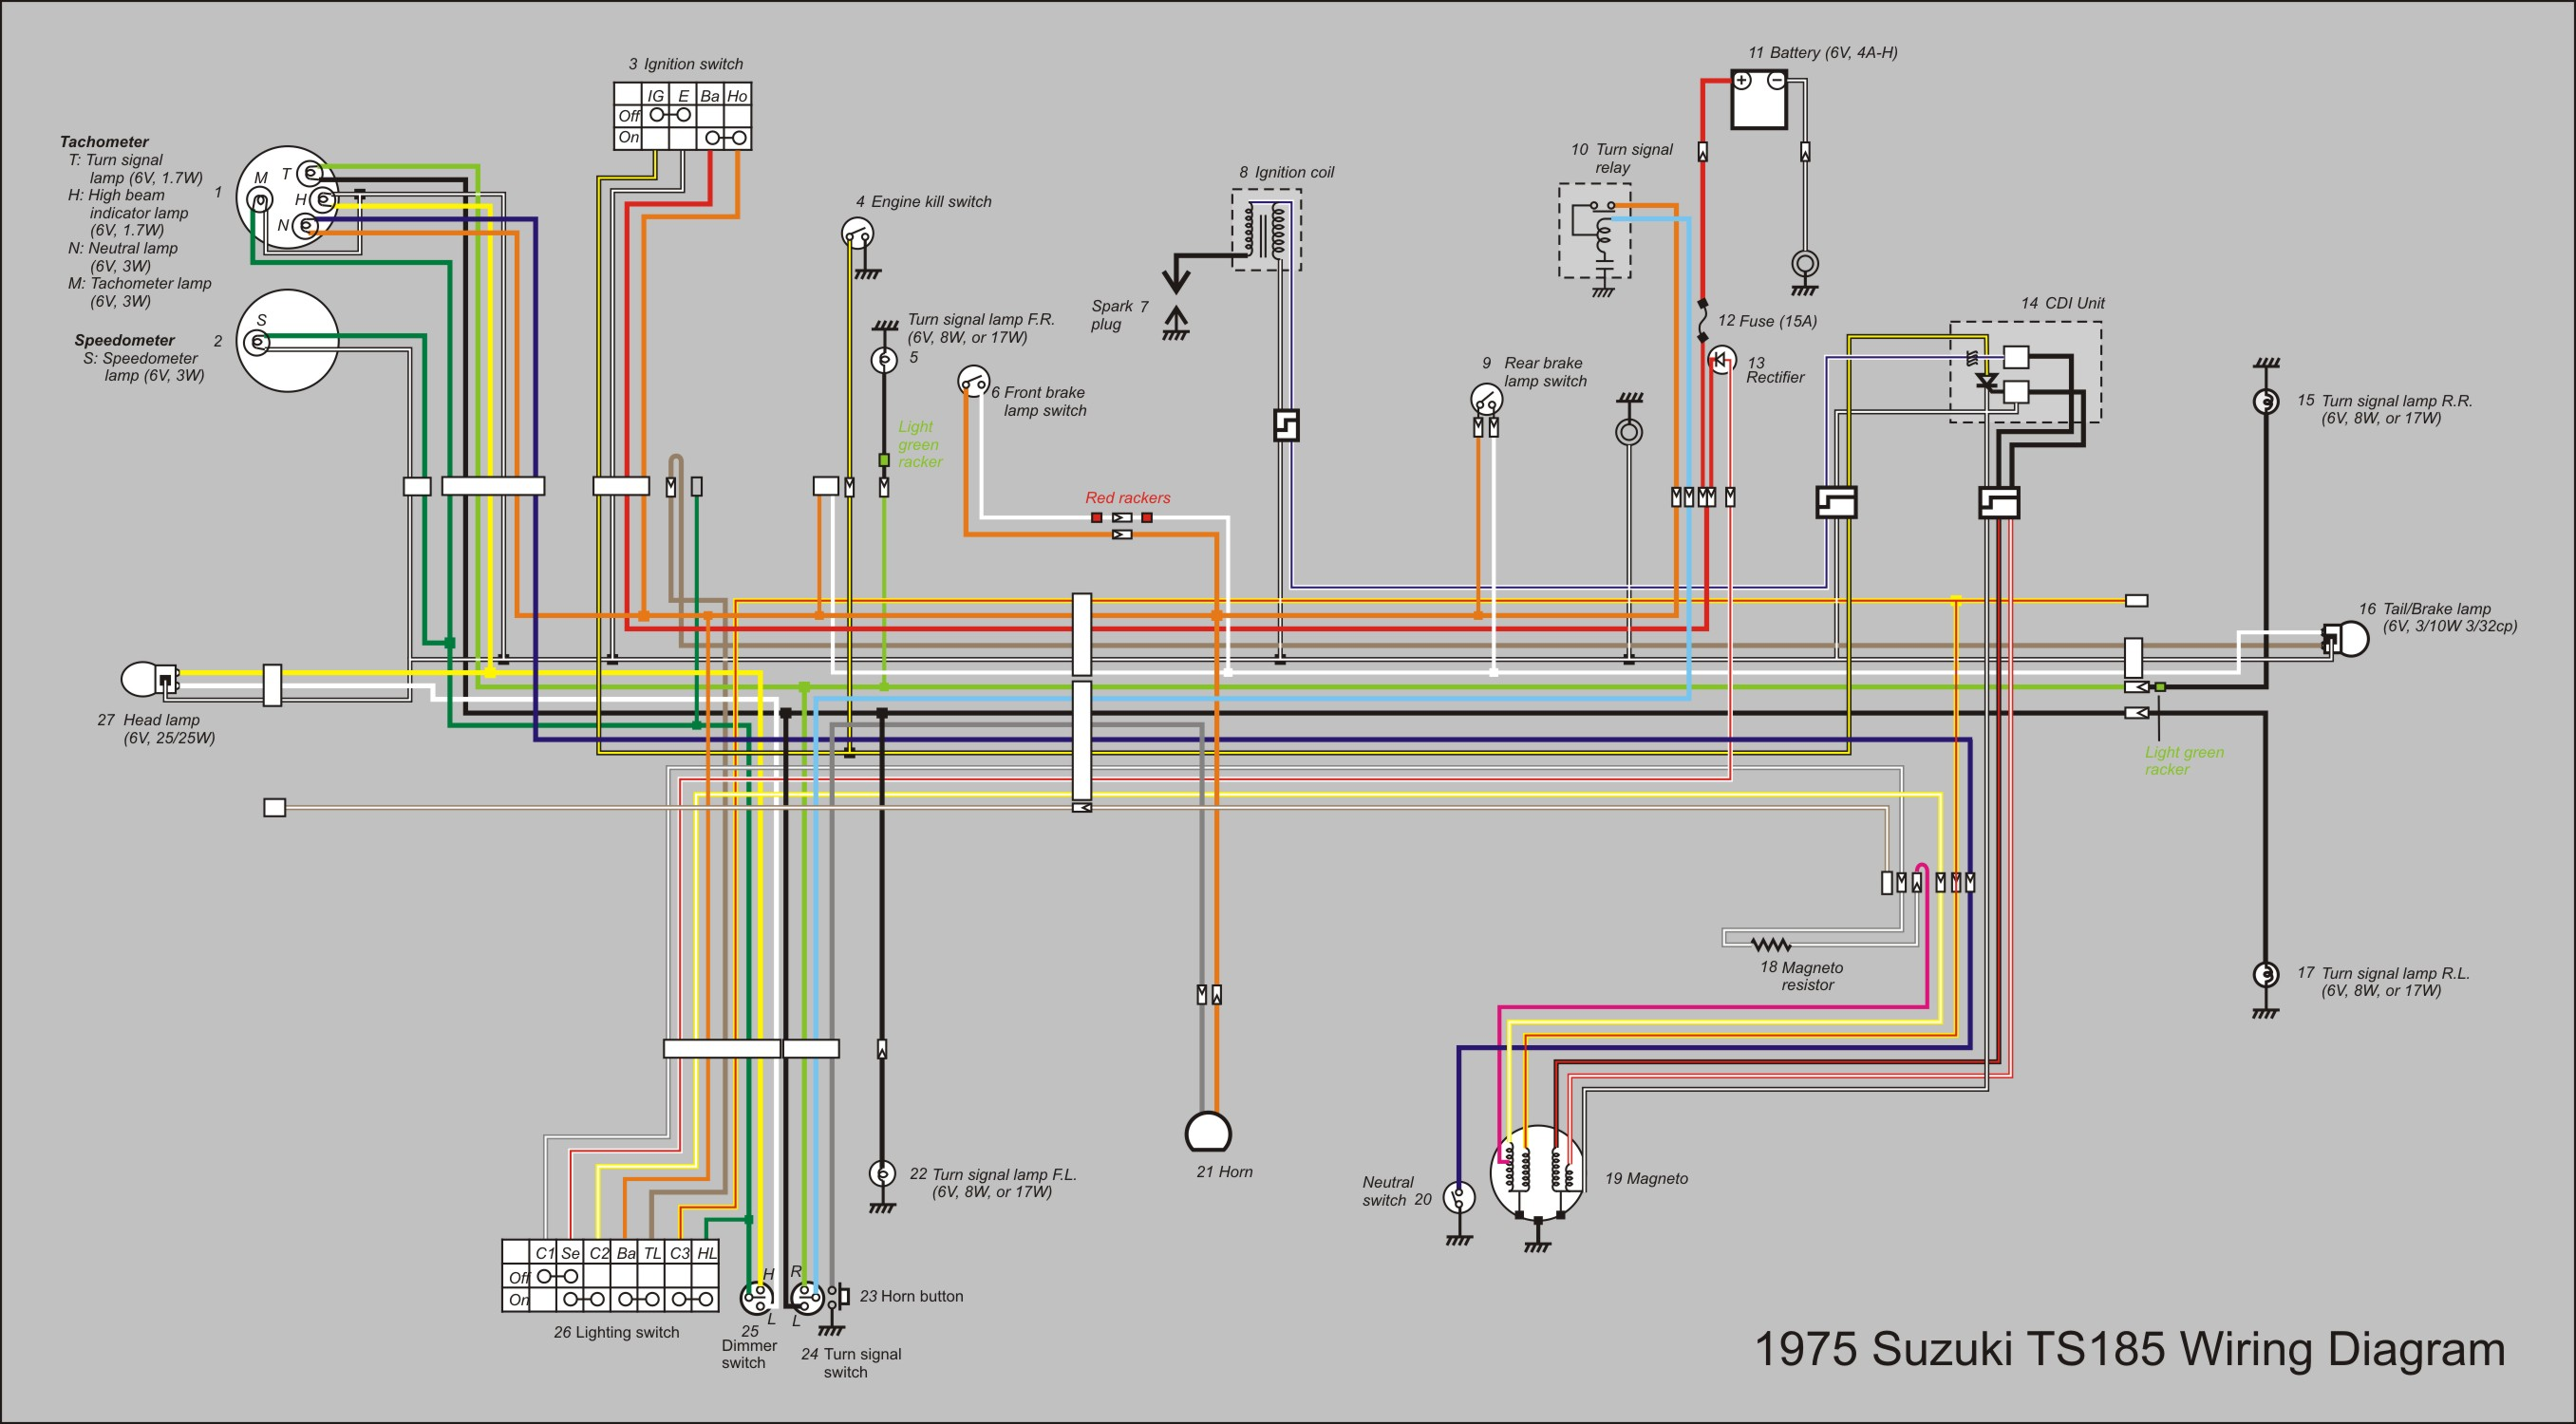 File:TS185 Wiring Diagram new.jpg